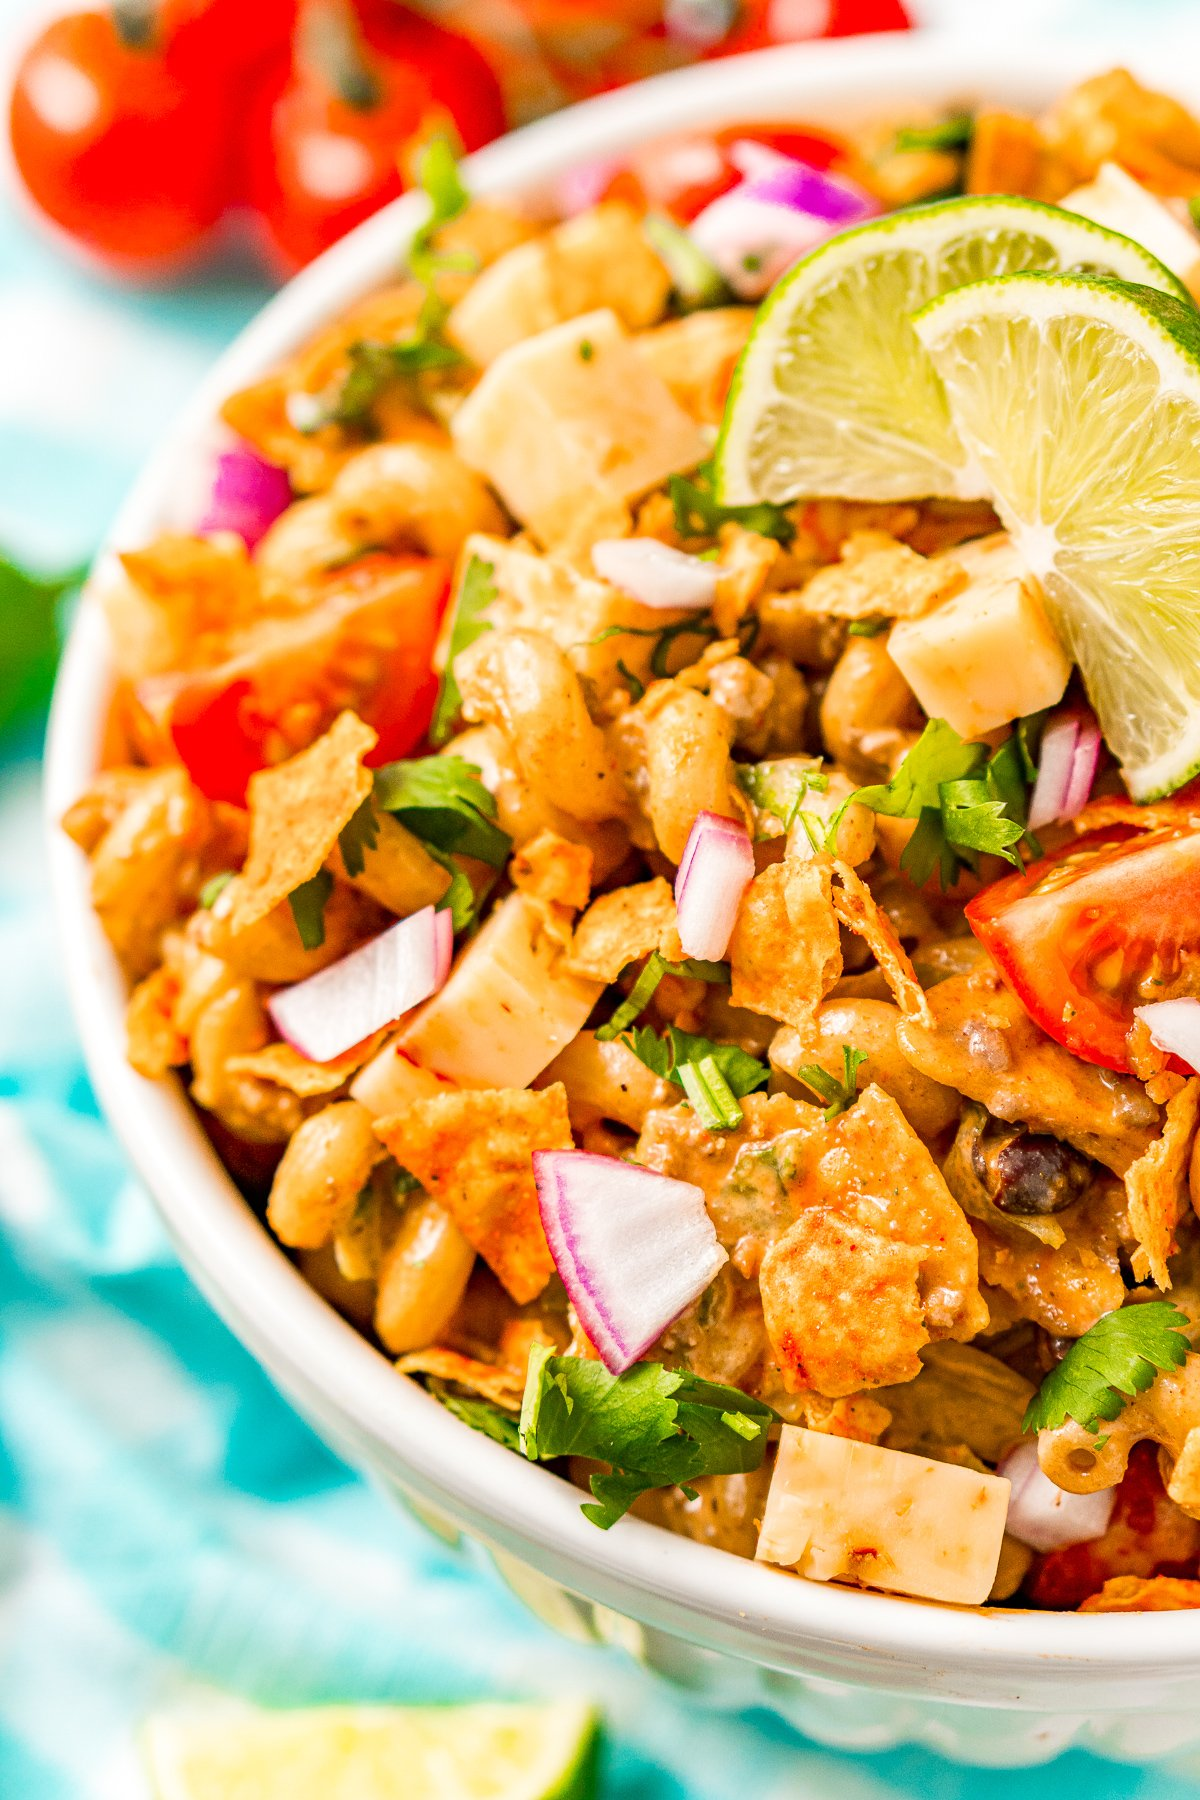 Pasta salad with taco fixings in a large white bowl for serving.